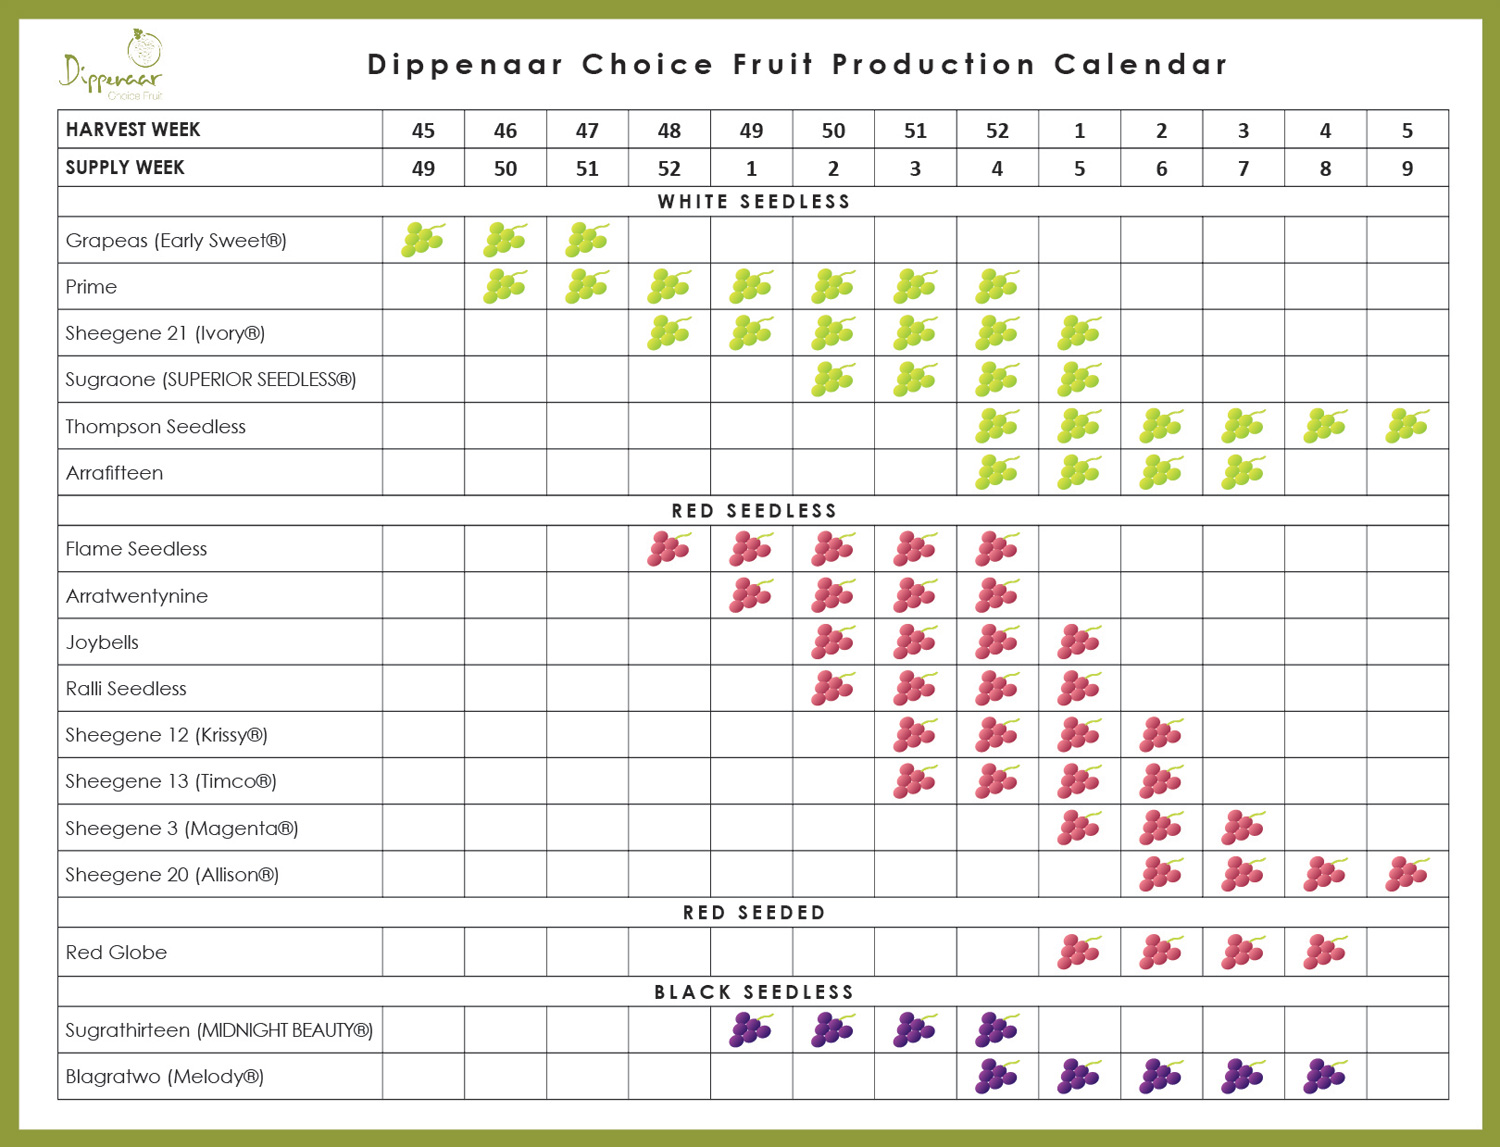 Dippenaar Choice Fruit Production Calendar